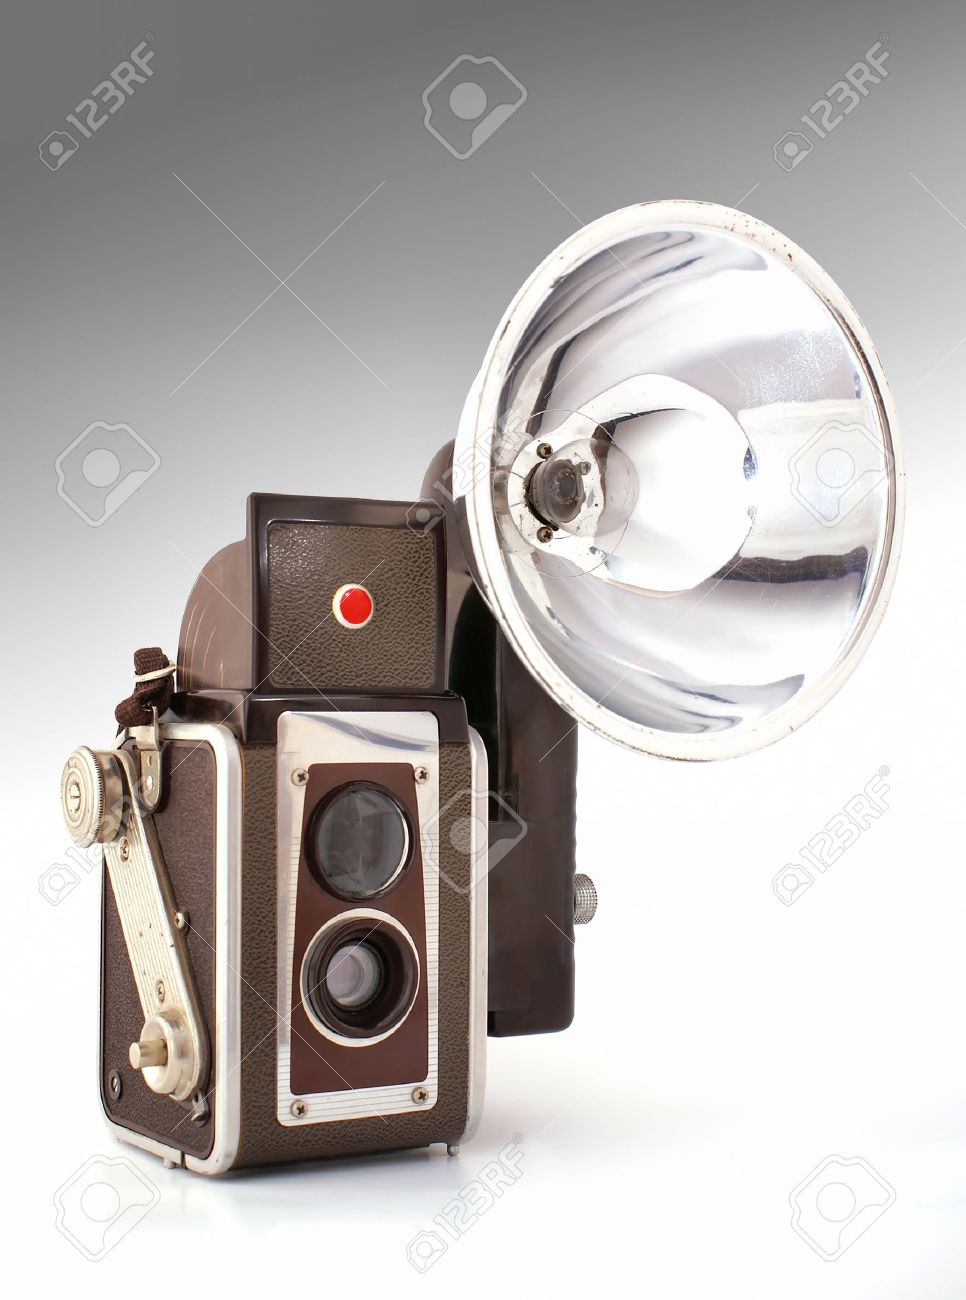 Old Camera Stock Photos. Royalty Free Old Camera Images And Pictures